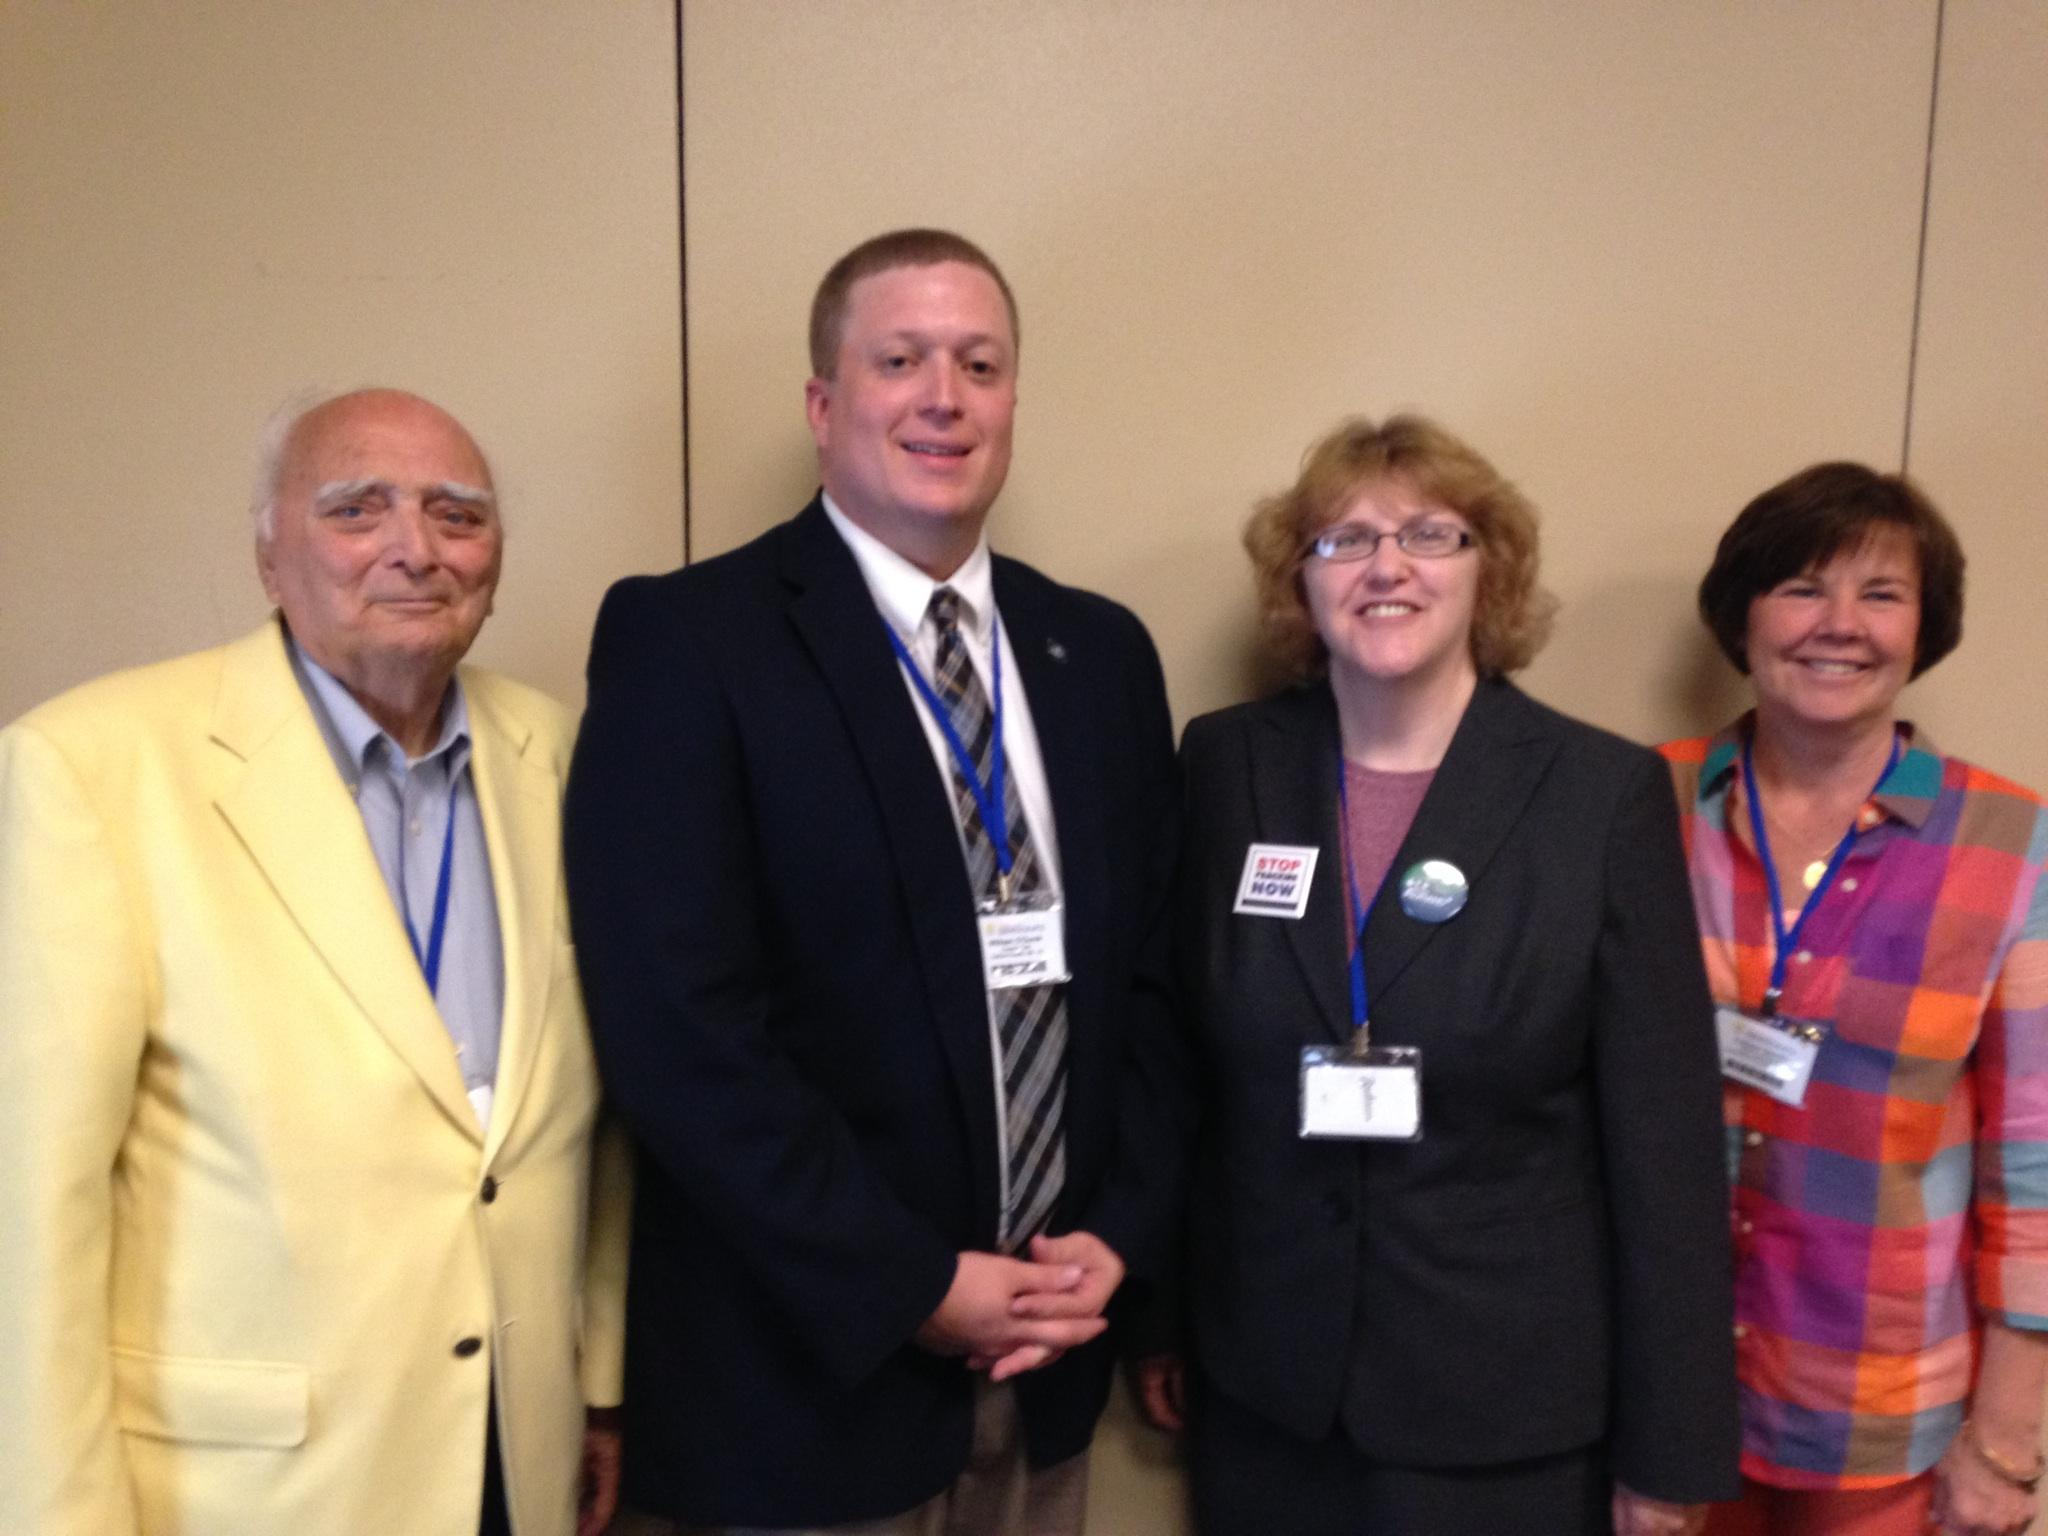 Caucus Officers (from left): Treasurer Paul Maher, Luzerne County, Chair Billy O'Gurek, Carbon County, Vice-Chair Sue Lyons, Monroe County, Secretary Colleen Gerrity, Lackawanna County.